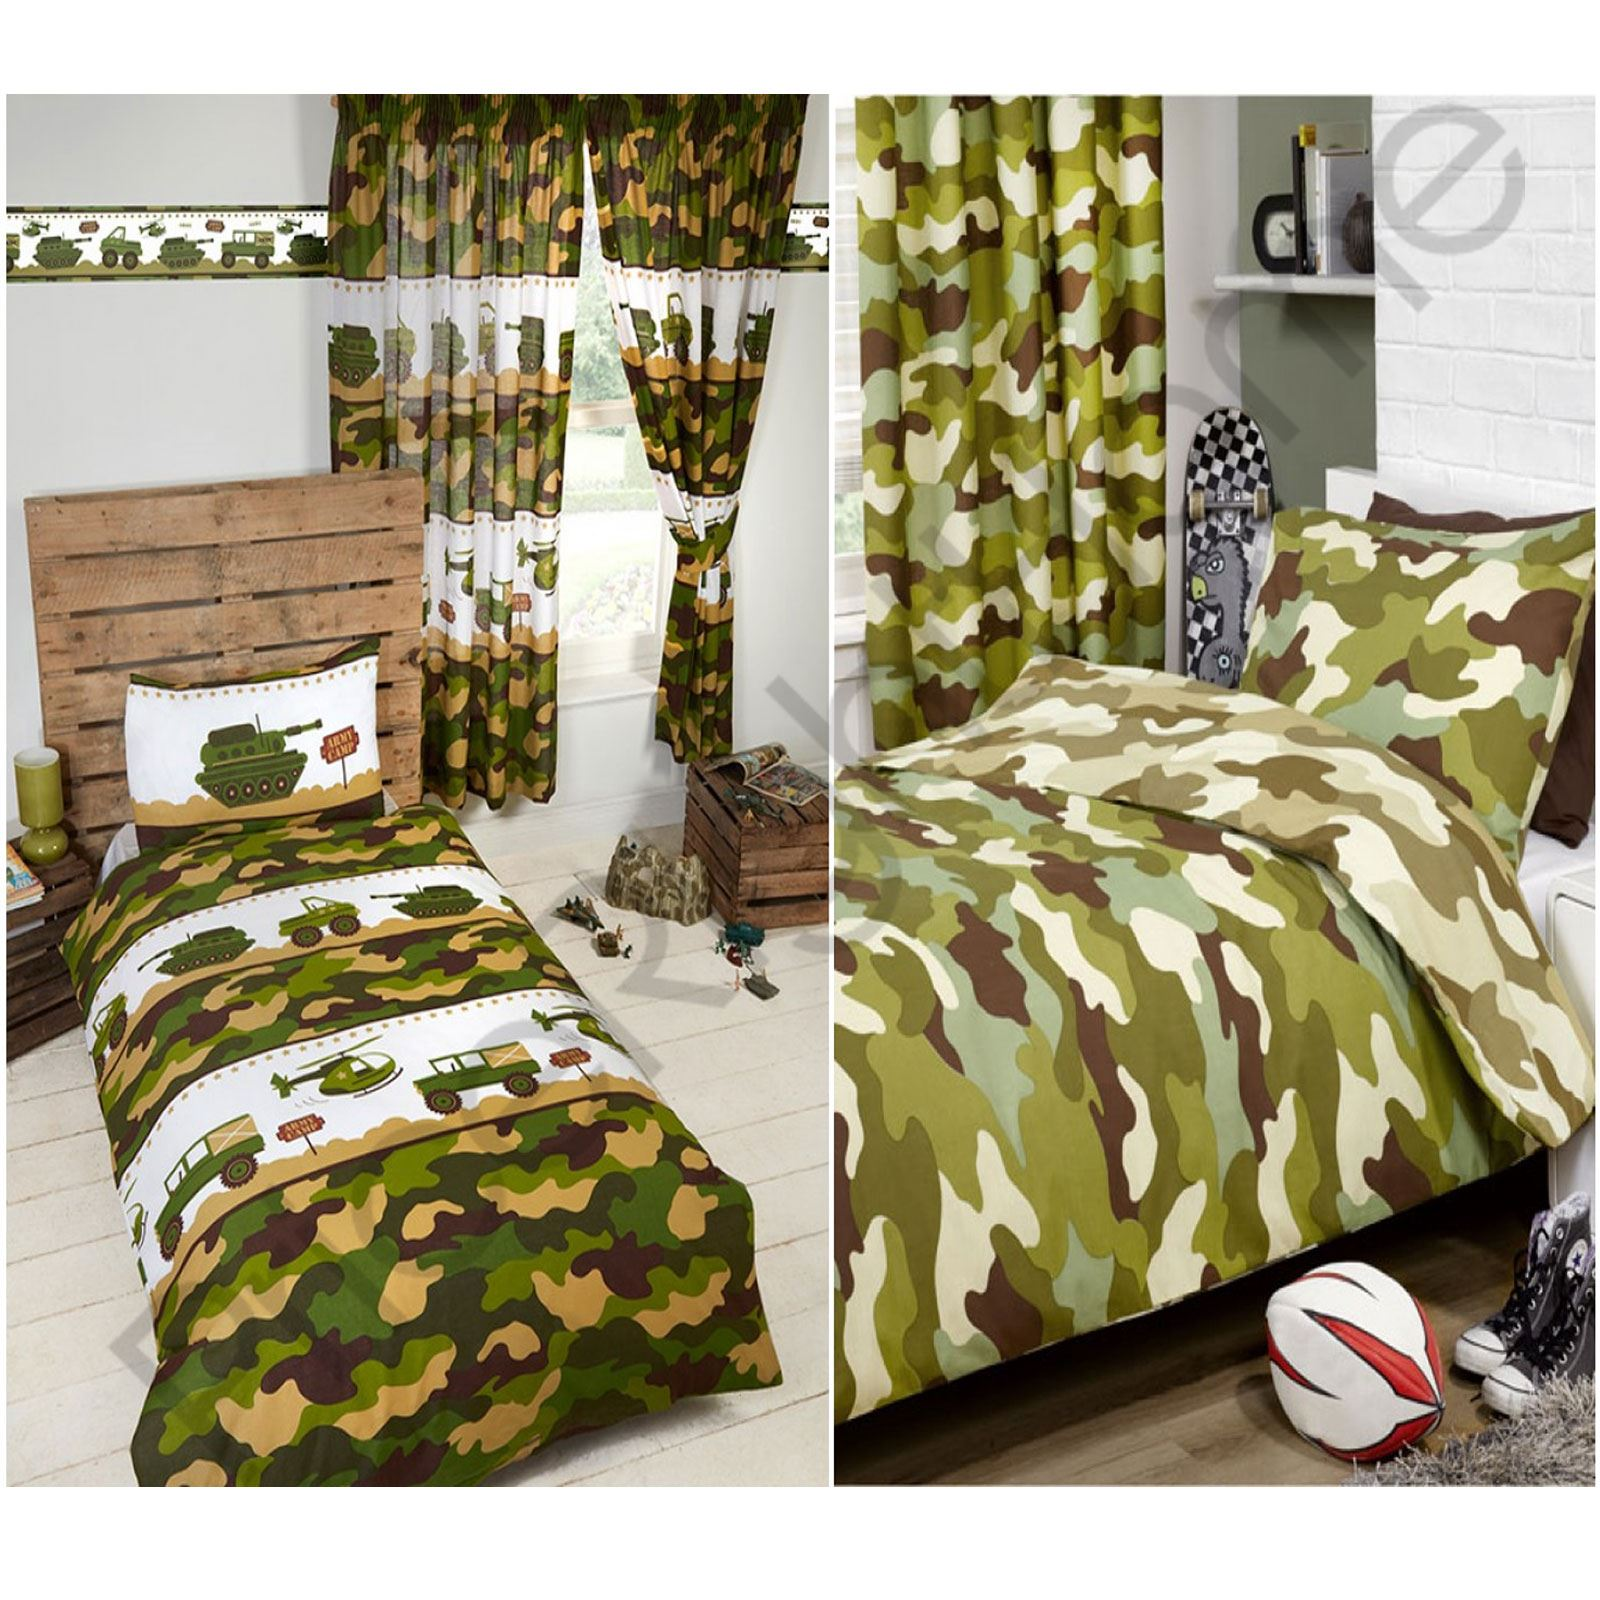 Army Camp Camouflage Duvet Covers Bedding Matching Curtains Wallpaper Border New